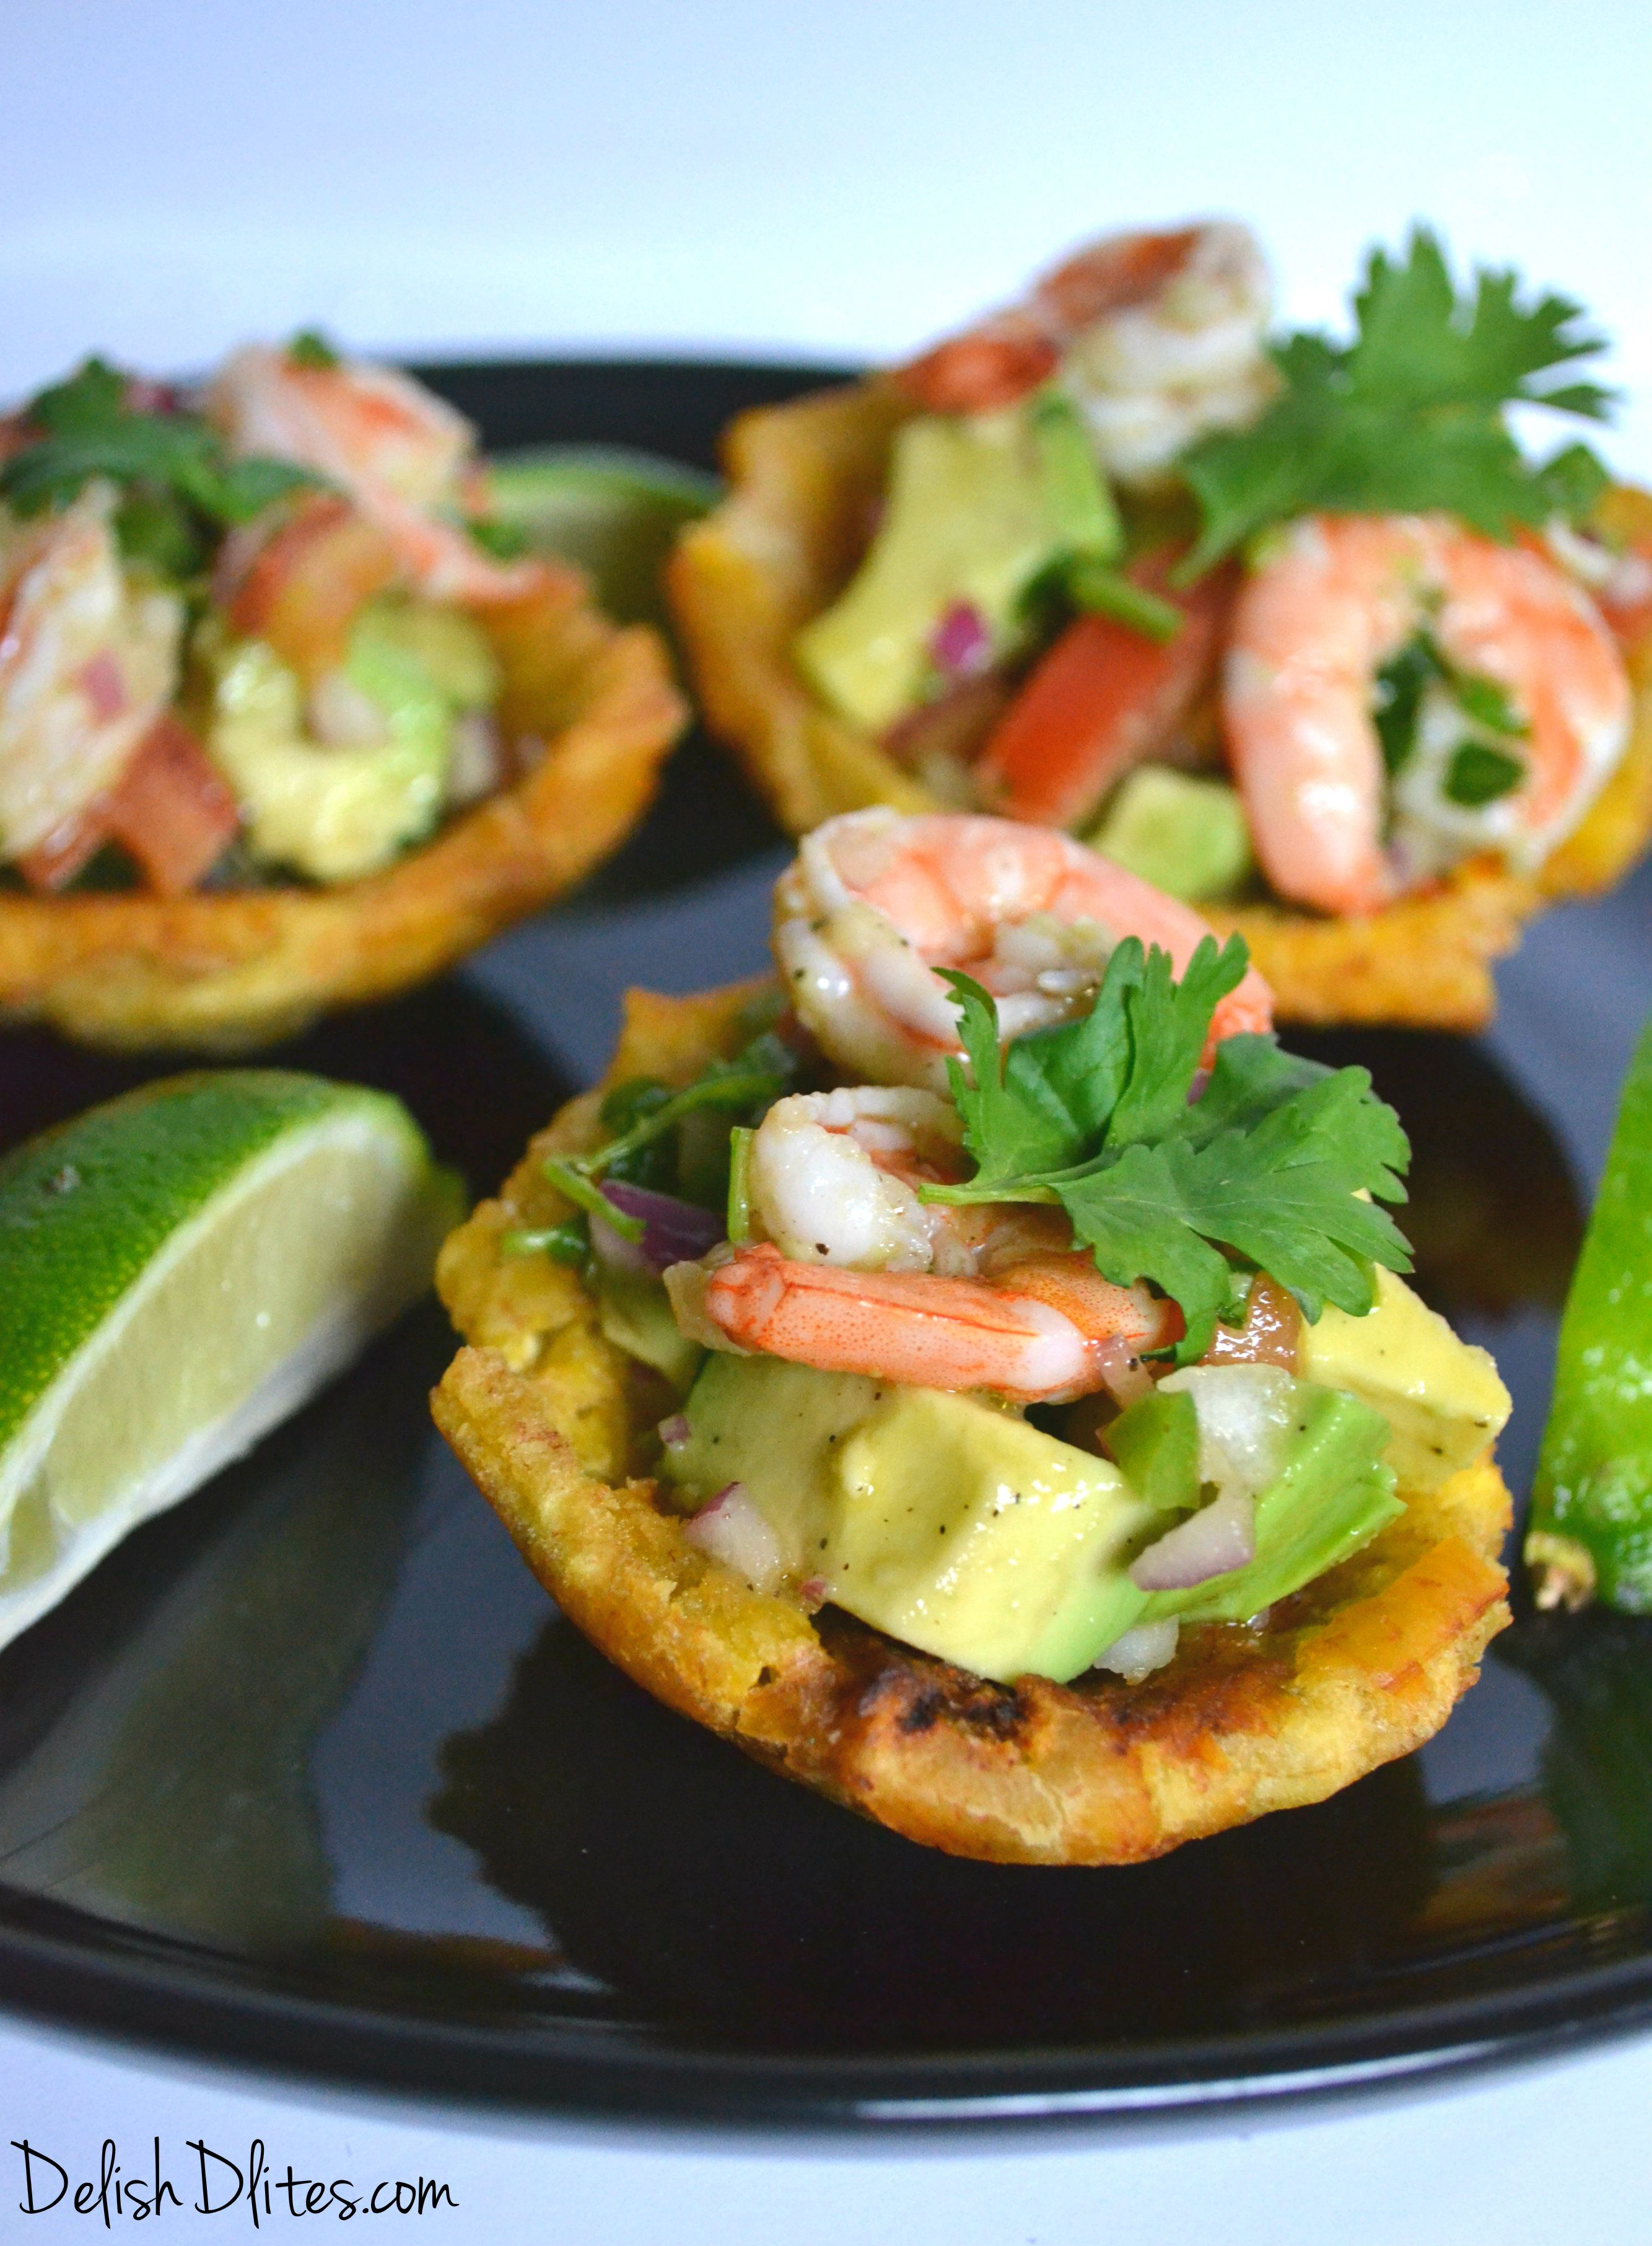 Whole30: These fried plantain cups with shrimp and avocado salad are an awesome Latin hand-held appetizer or dinner option that will truly impress your guests!